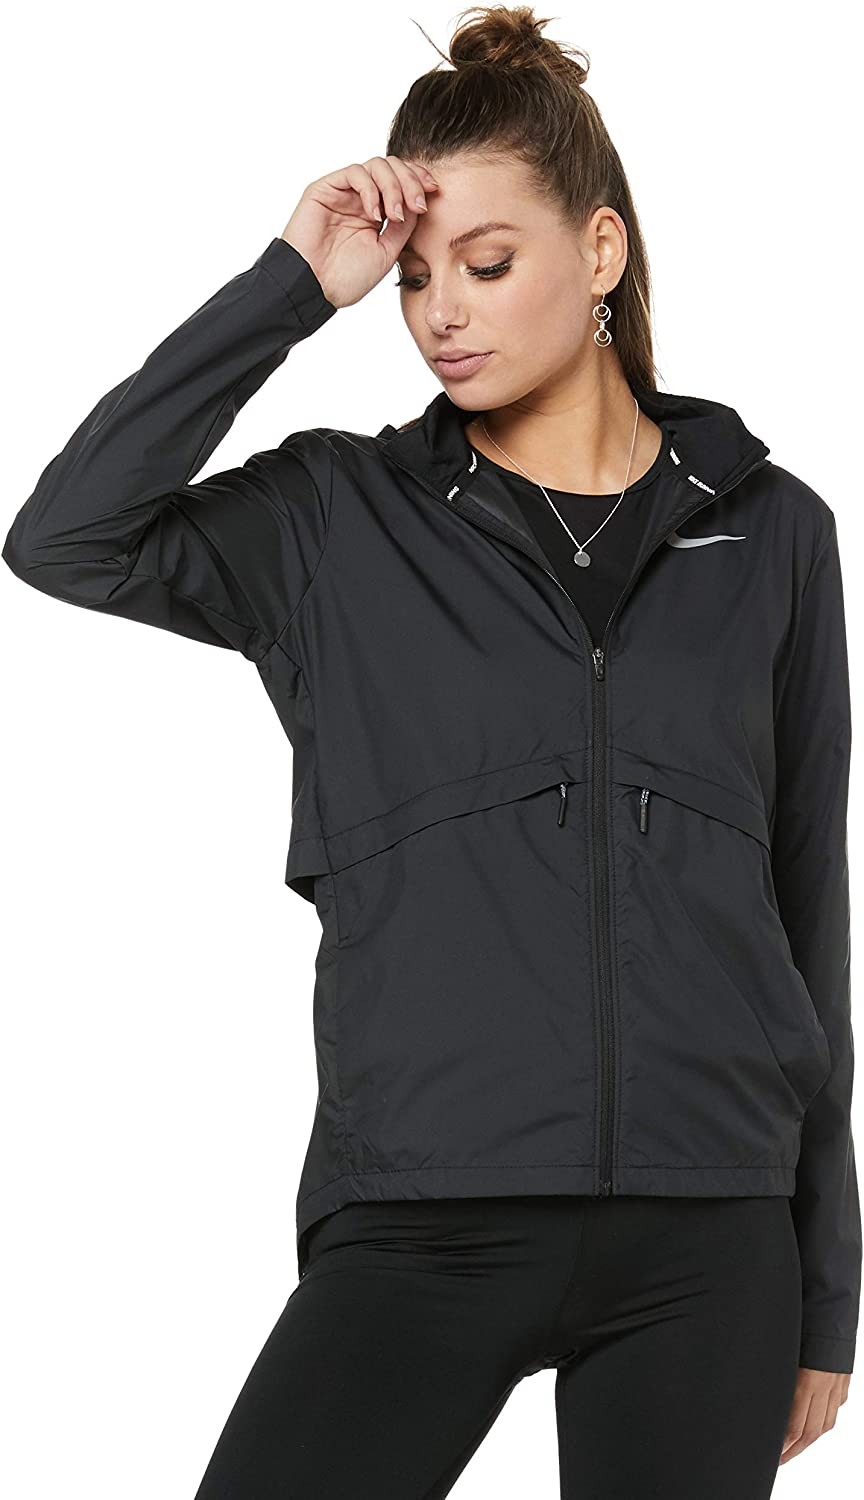 Nike Women's Essential Hooded Running Jacket 933466 at ...